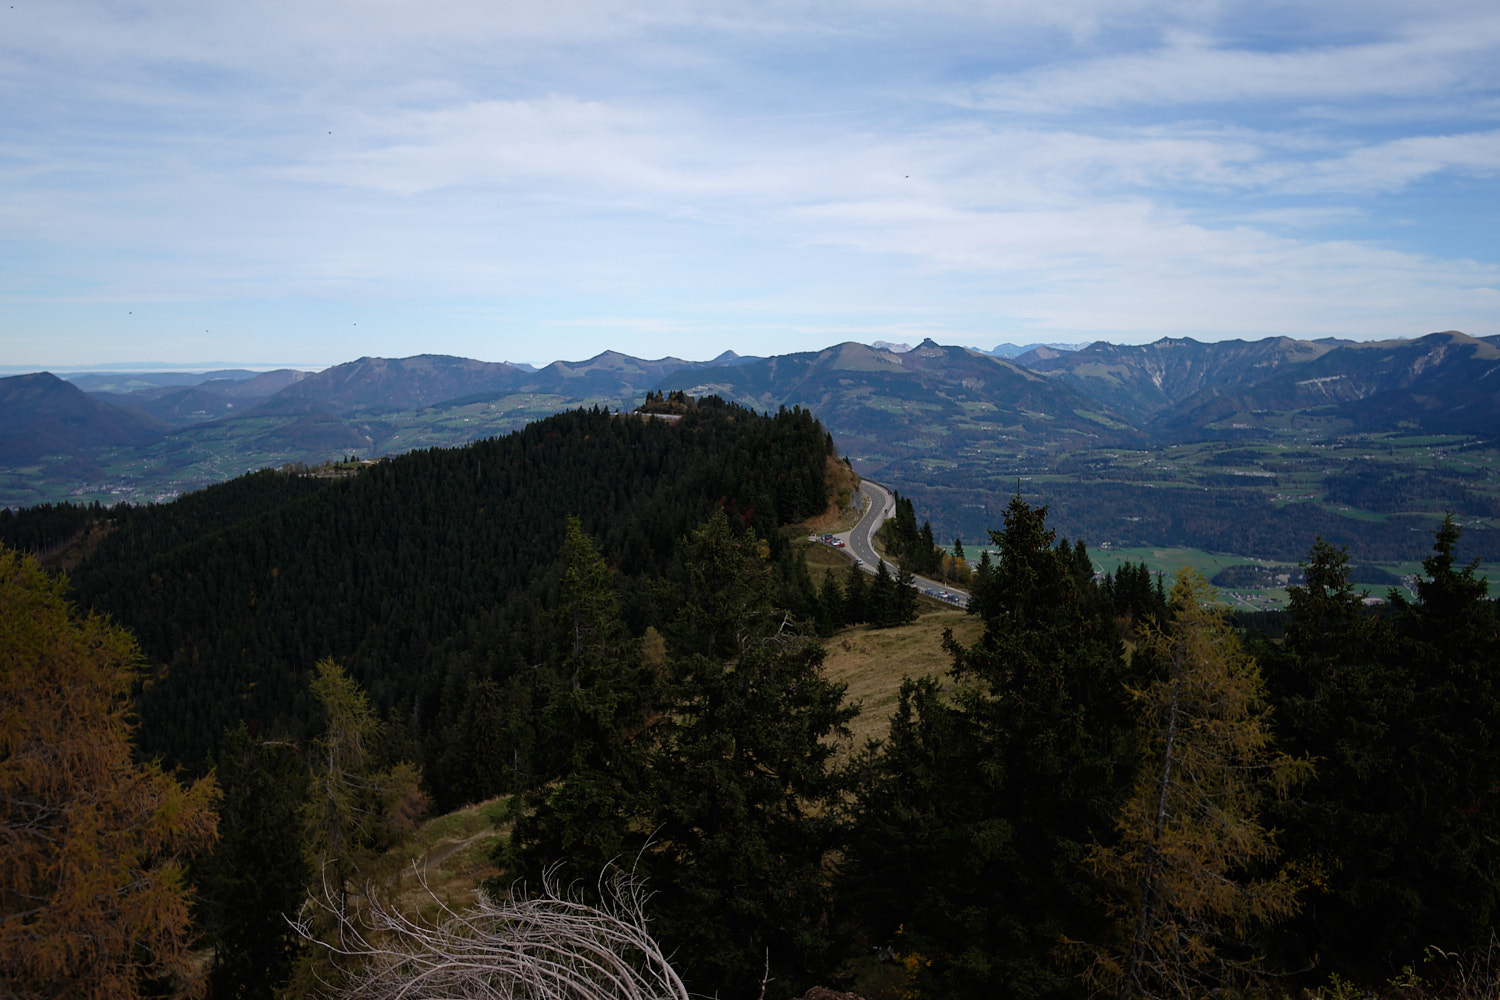 View from the Roßfeldpanorama road to the Hoher Göll